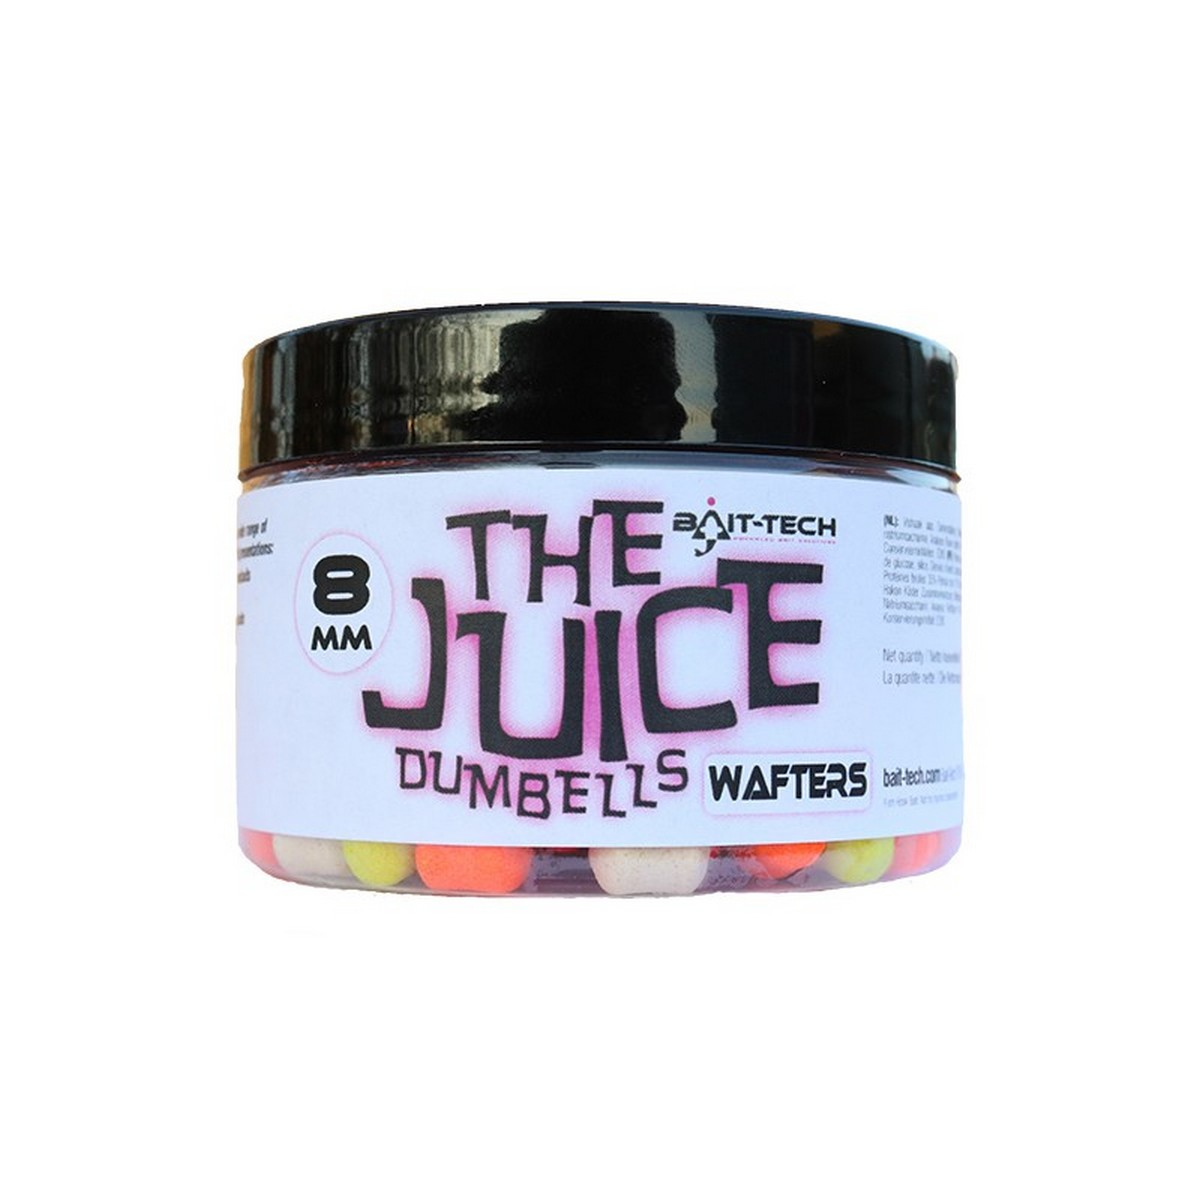 Bait-Tech The Juice Dumbells Wafters